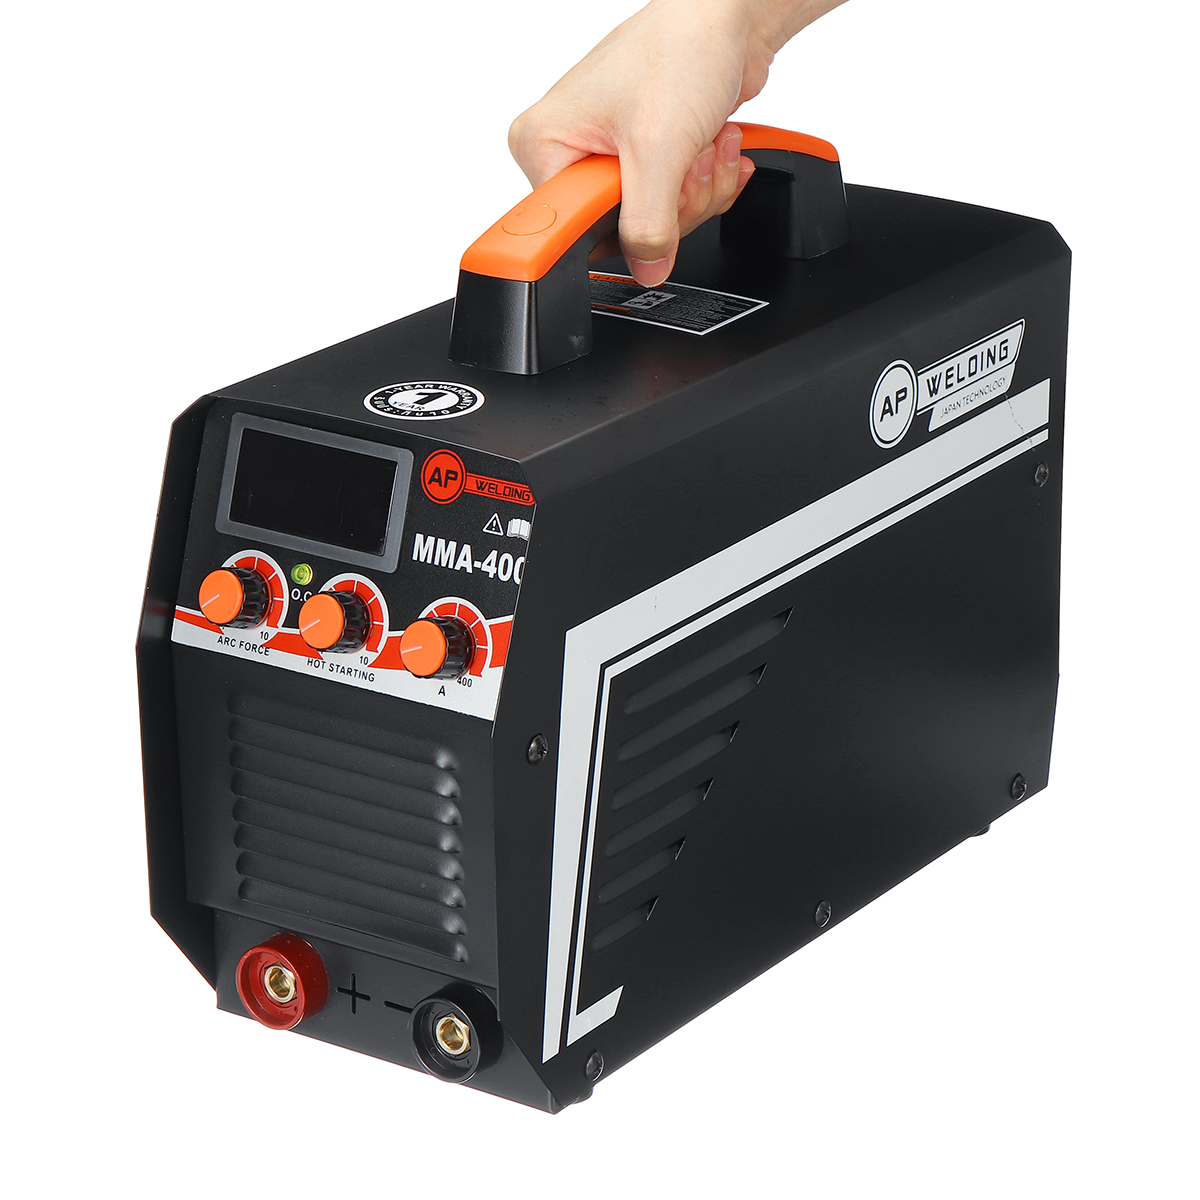 Tools : New IGBT Inverter Arc Electric Welding Machine MMA-400 220V Digital Display Arc Stick Welders Set For DIY Home Welding Working